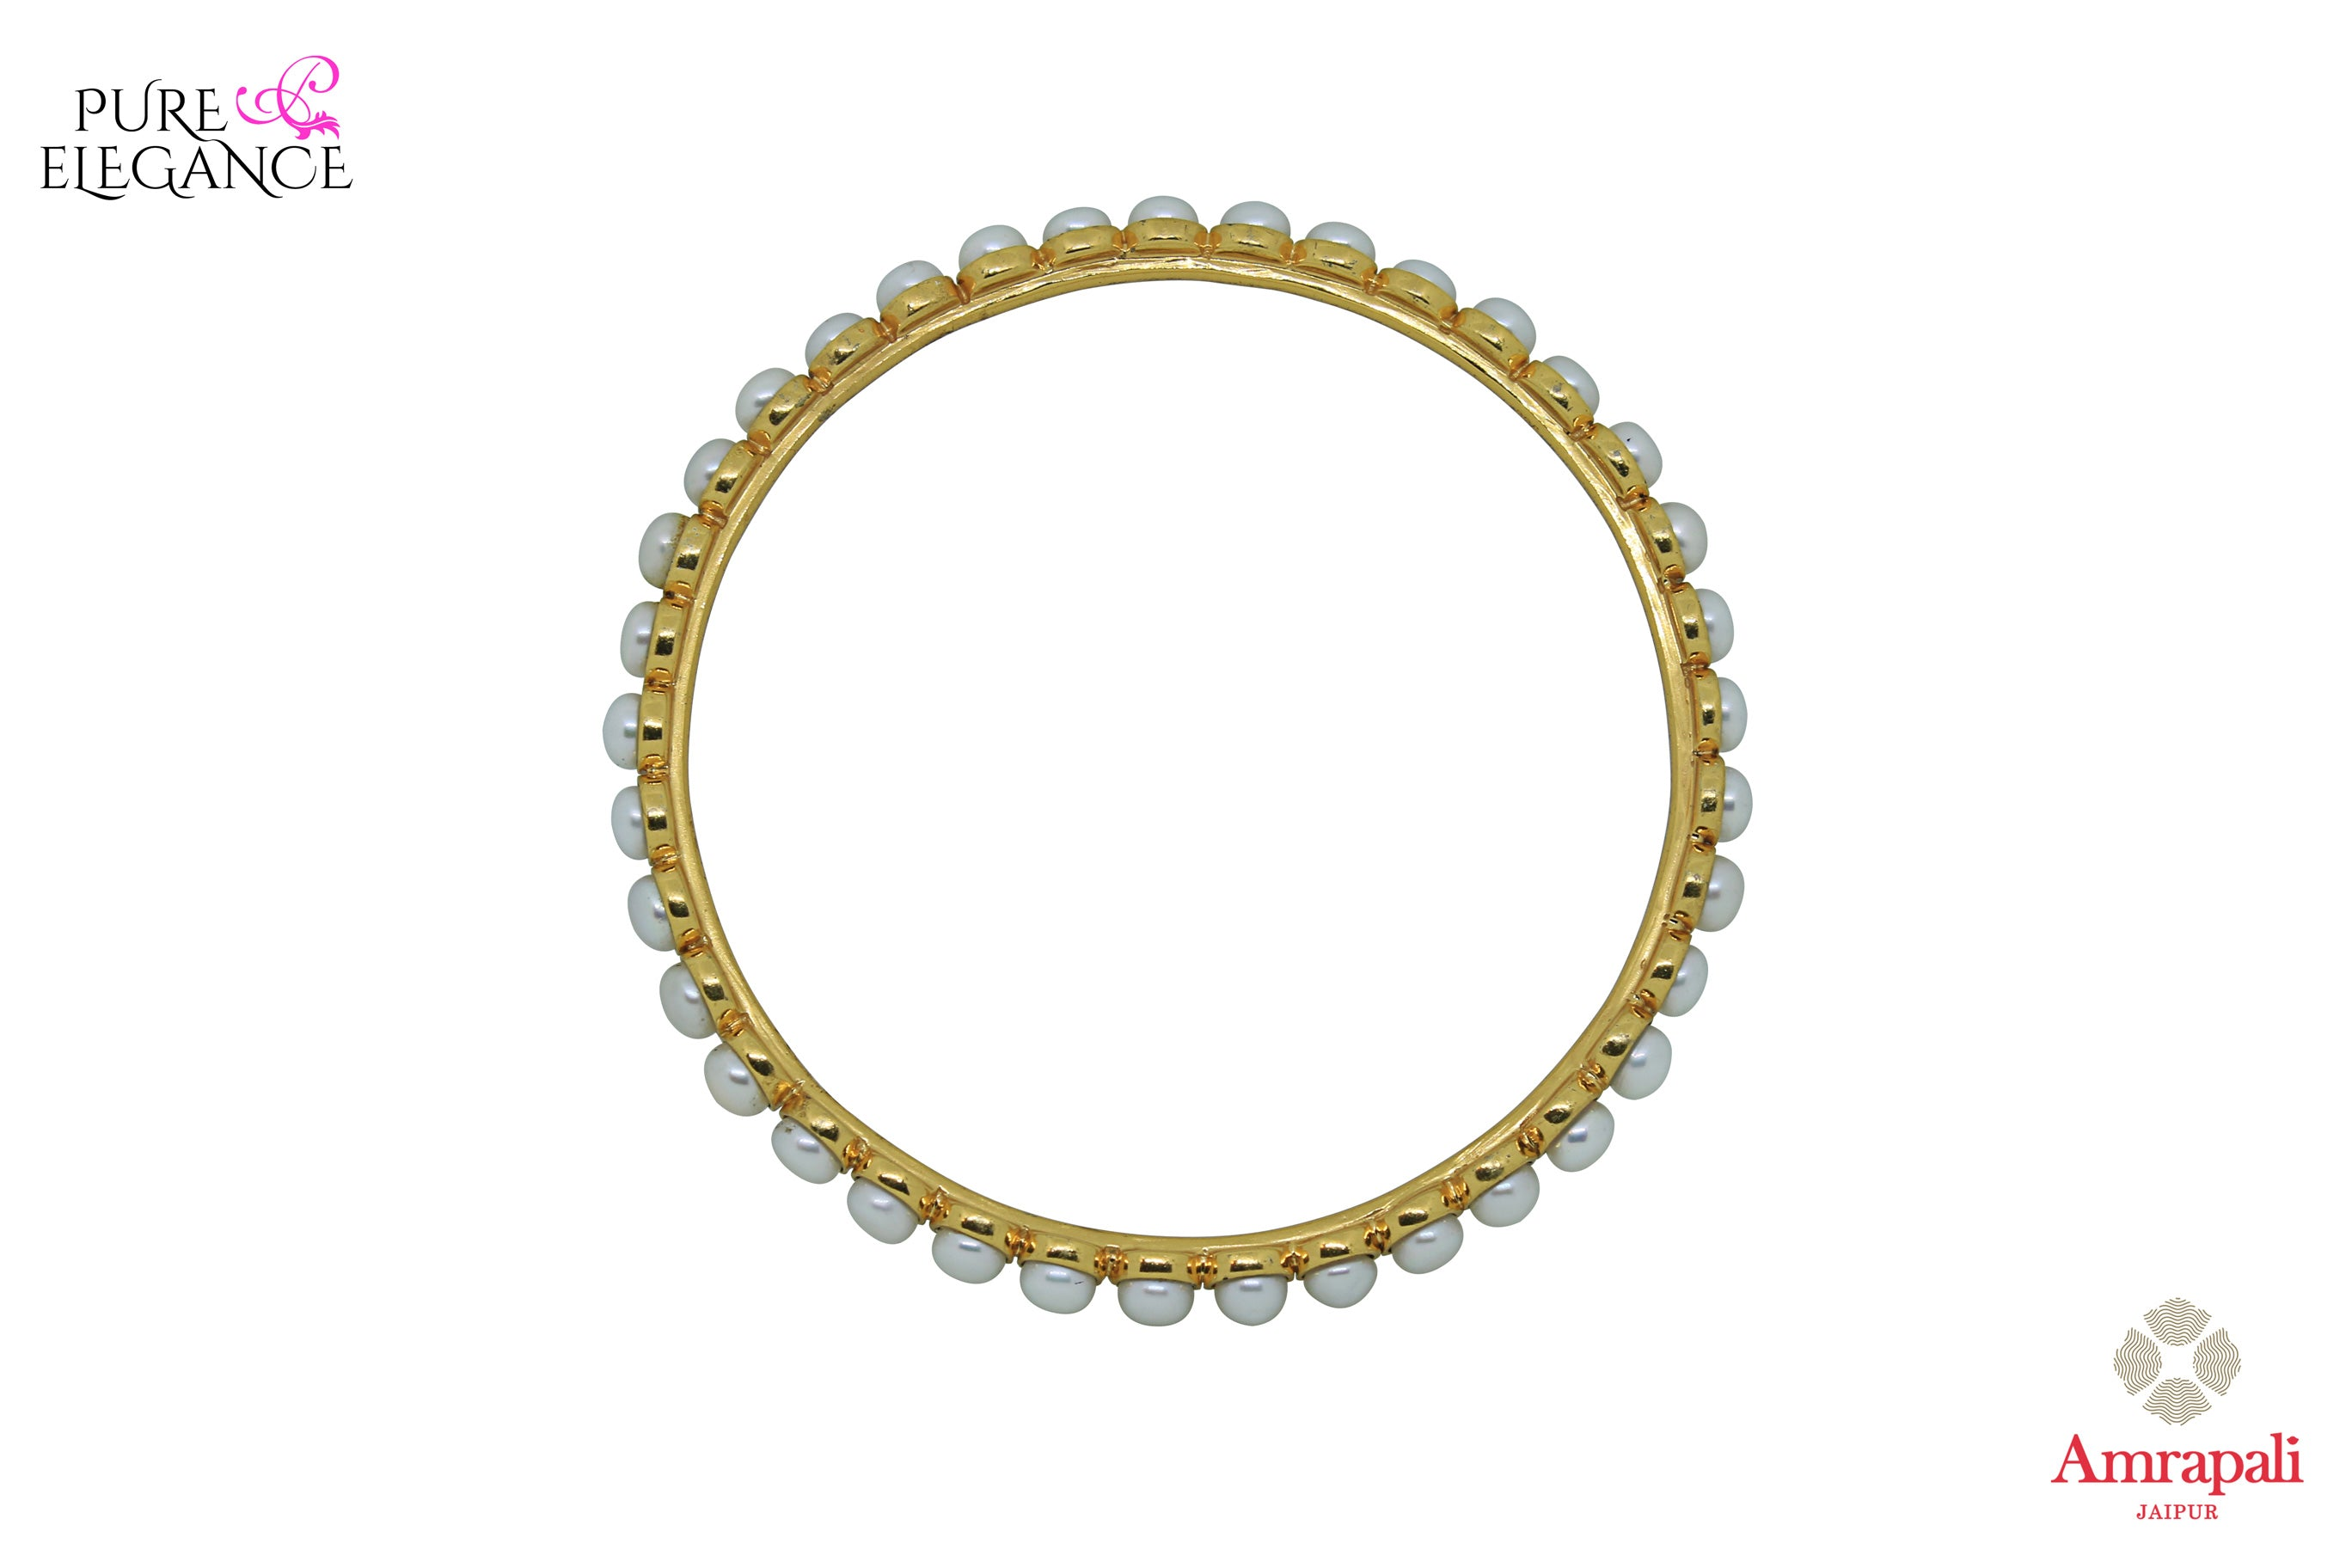 Buy Amrapali silver gold plated bangle online in USA with pearls. Find an exquisite collection of handcrafted silver gold plated jewelry in USA at Pure Elegance Indian fashion store. Complete your festive look with traditional Indian jewelry, silver gold plated earrings, silver jewellery from our online store.-top